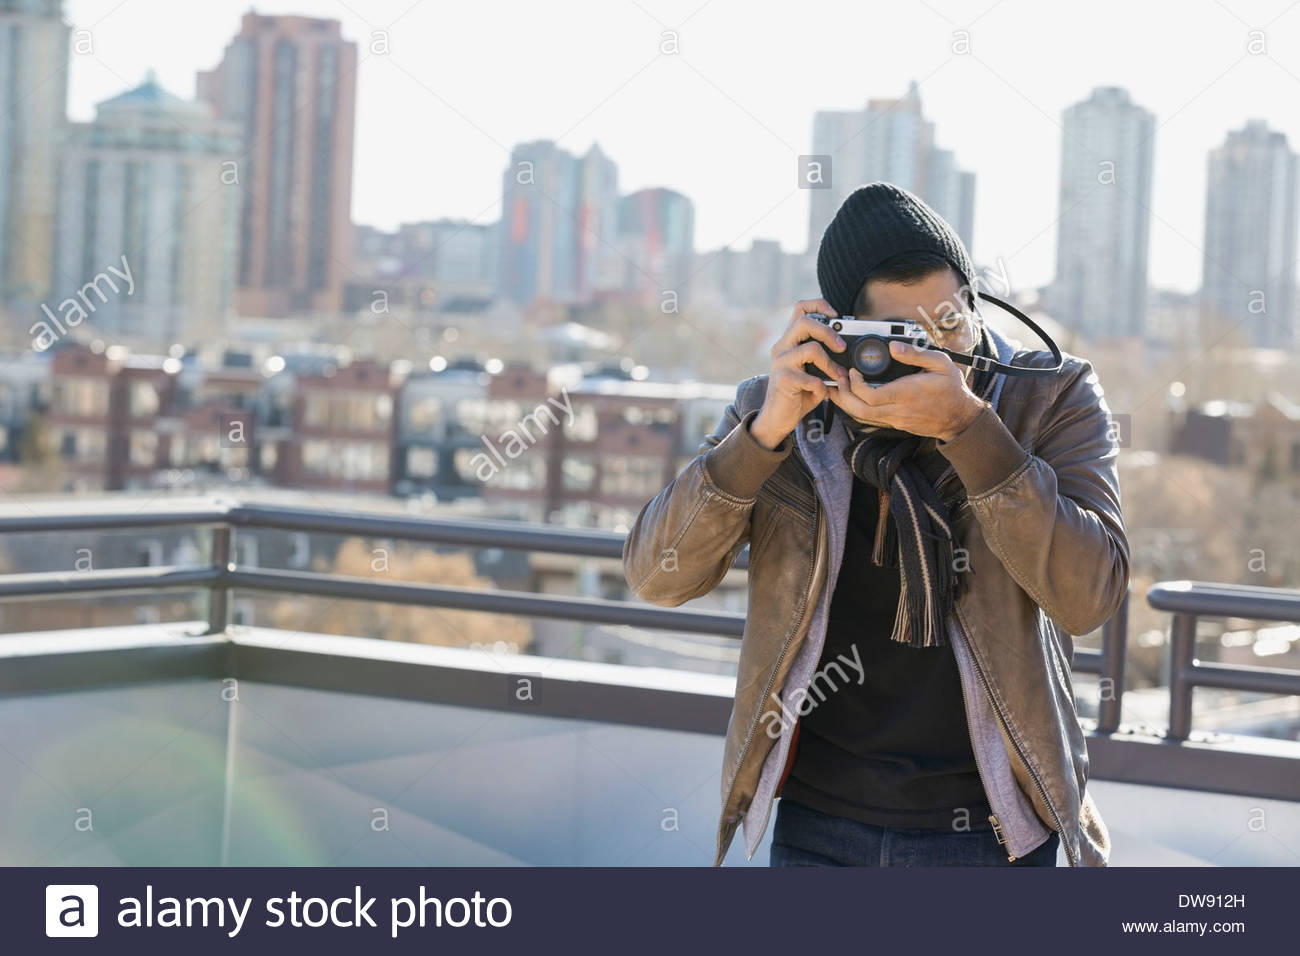 Man using vintage camera outdoors - Stock Image